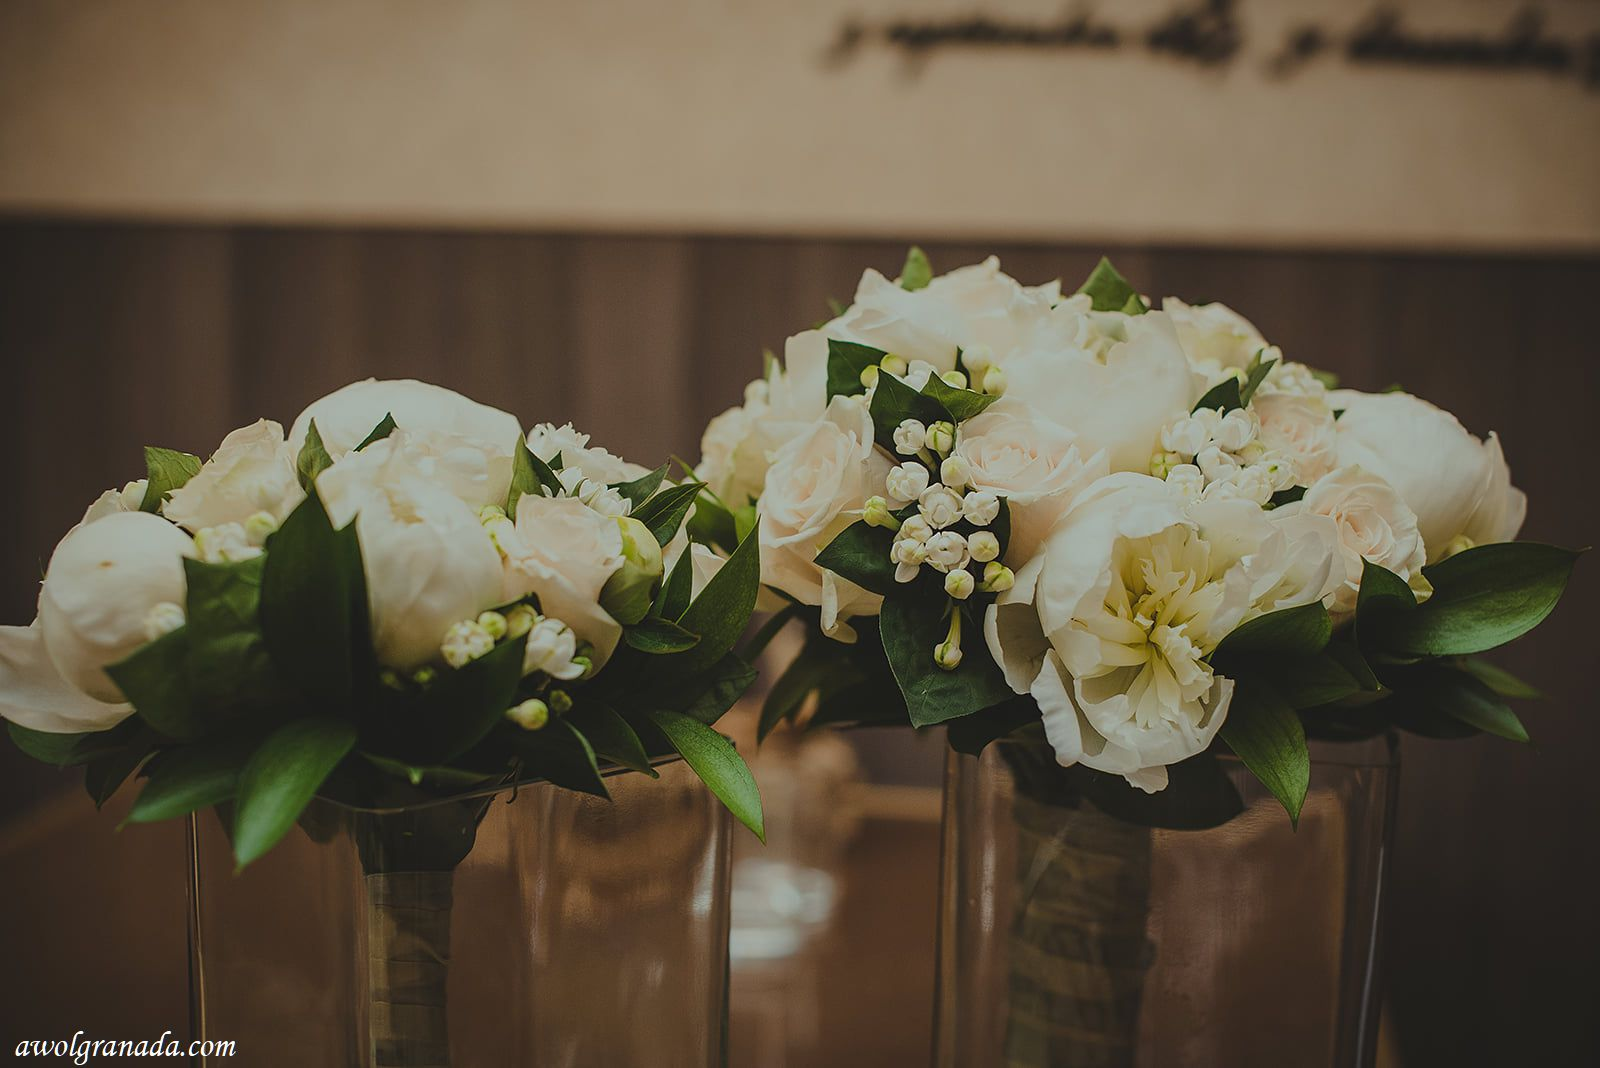 AWOL Granada, Wedding Planner , Spain -The Bridal Bouquet